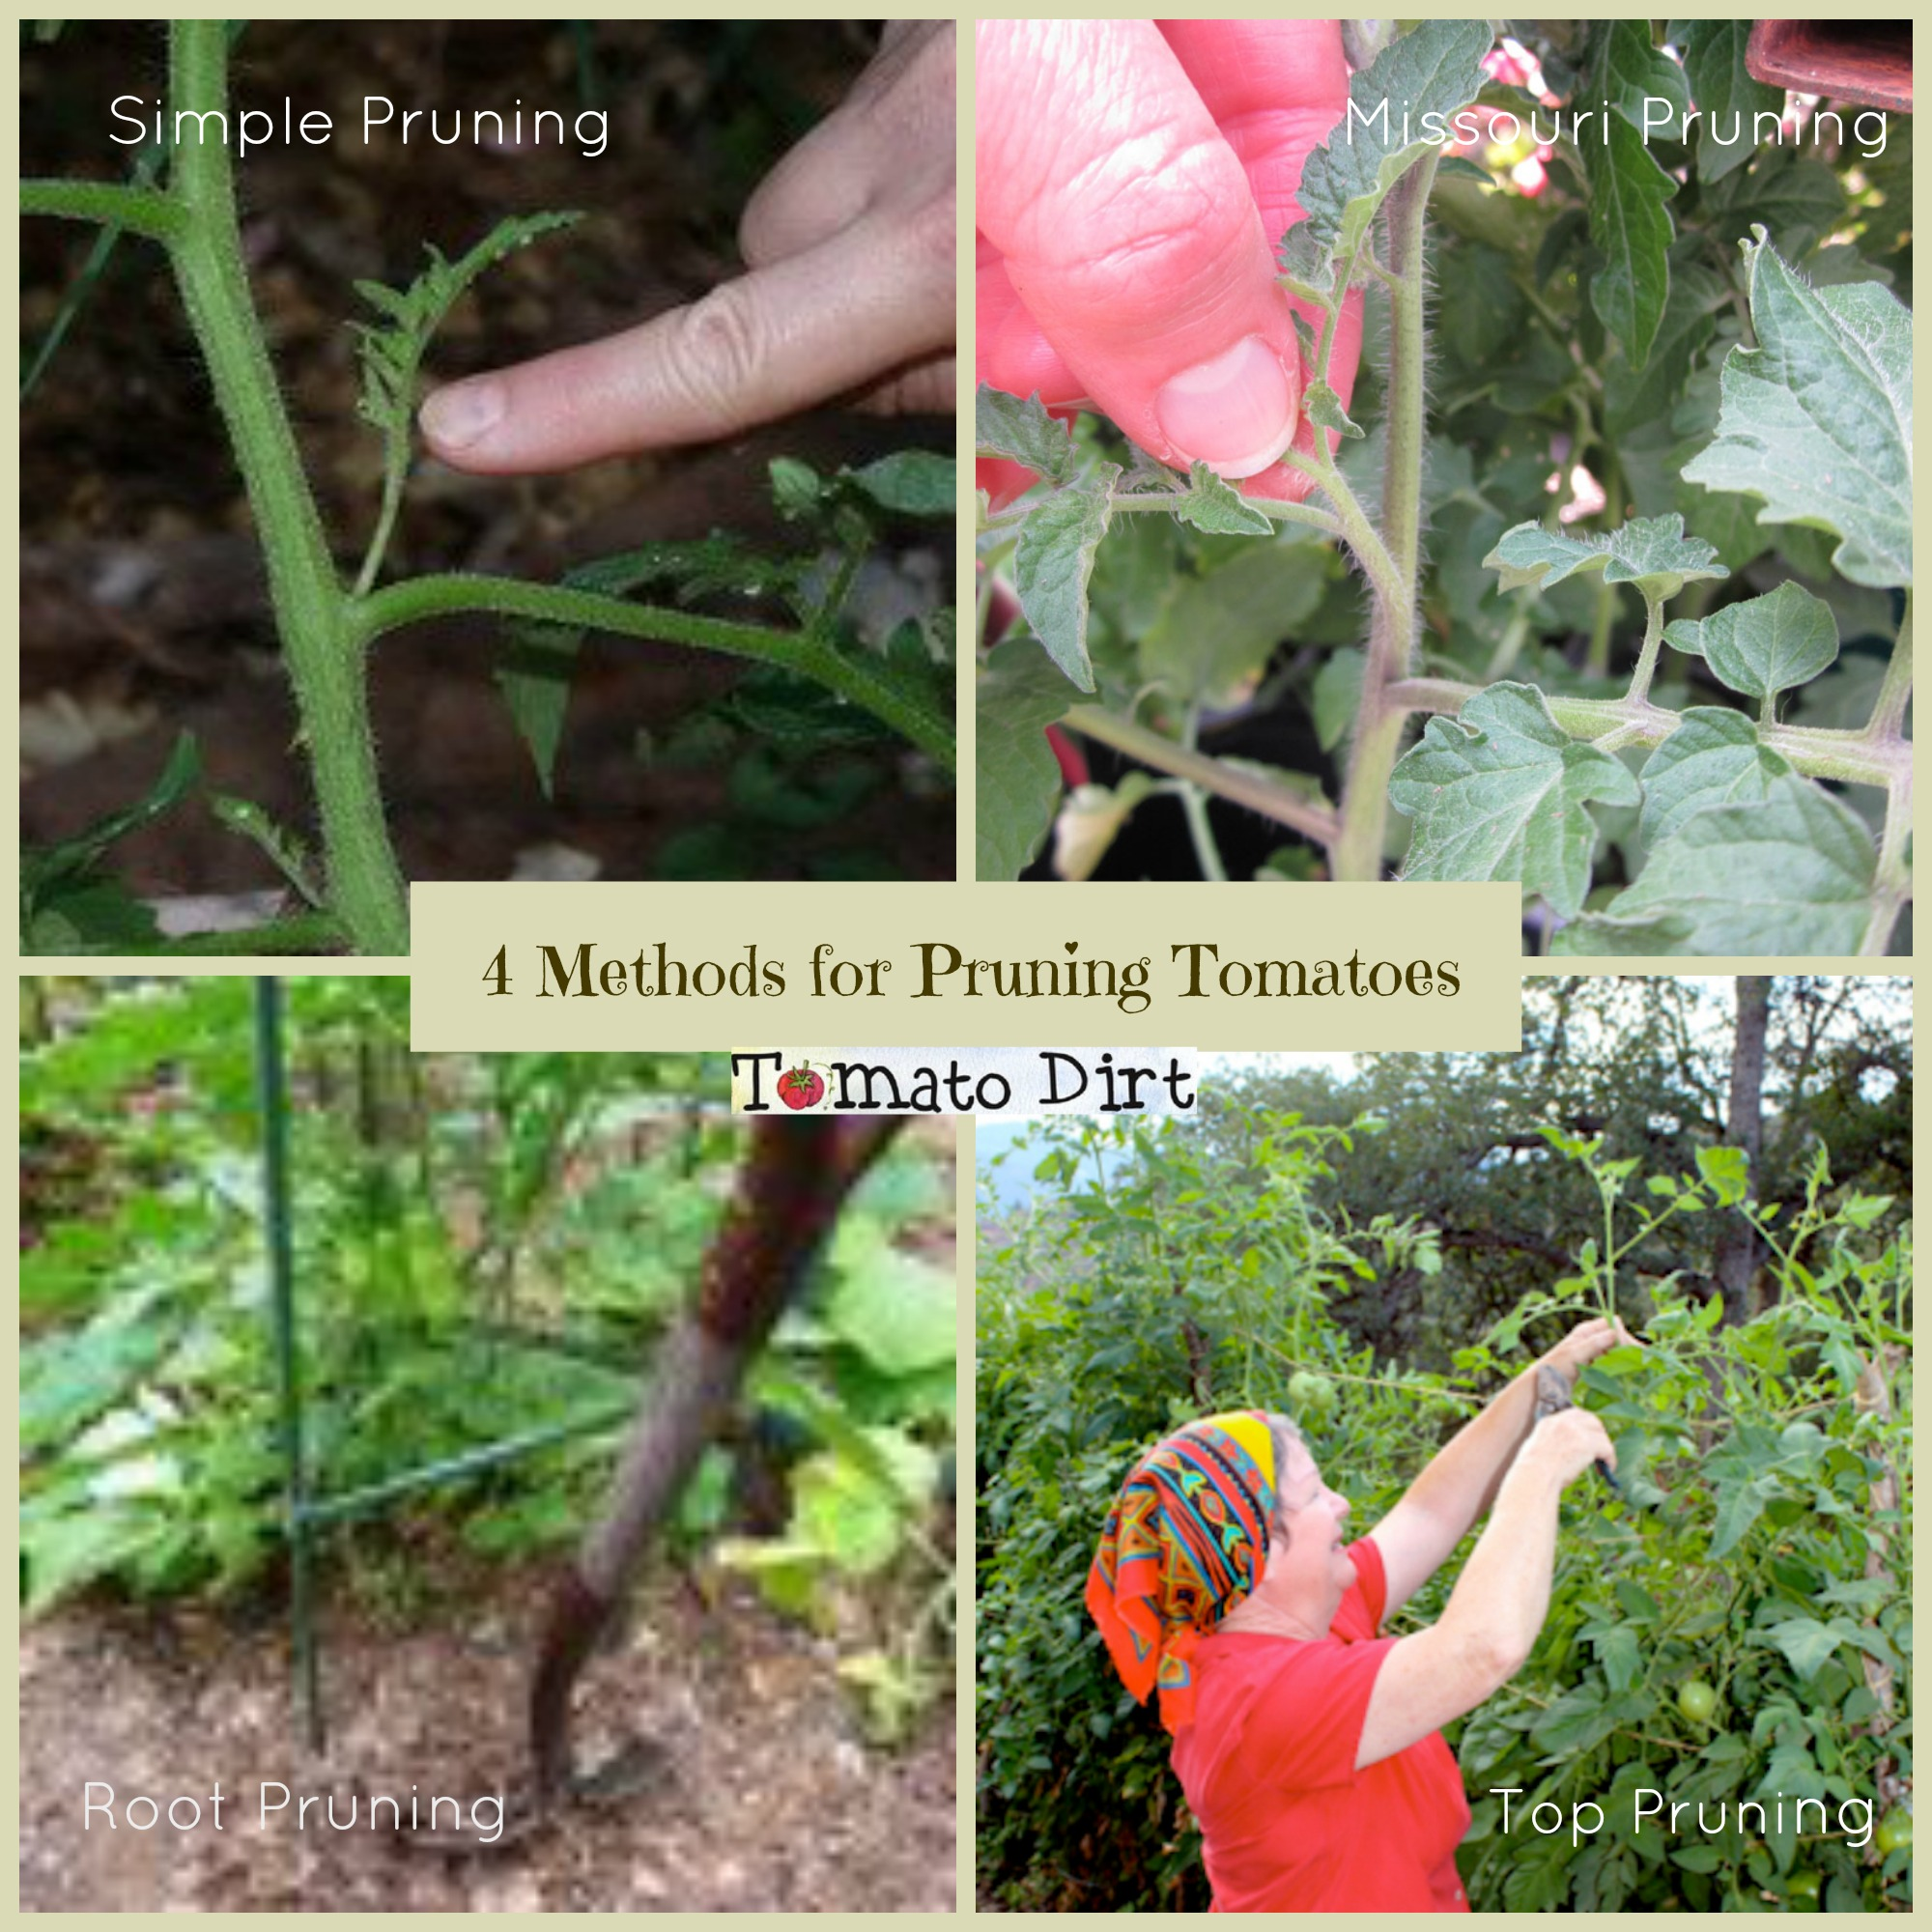 4 methods of pruning tomatoes with Tomato Dirt